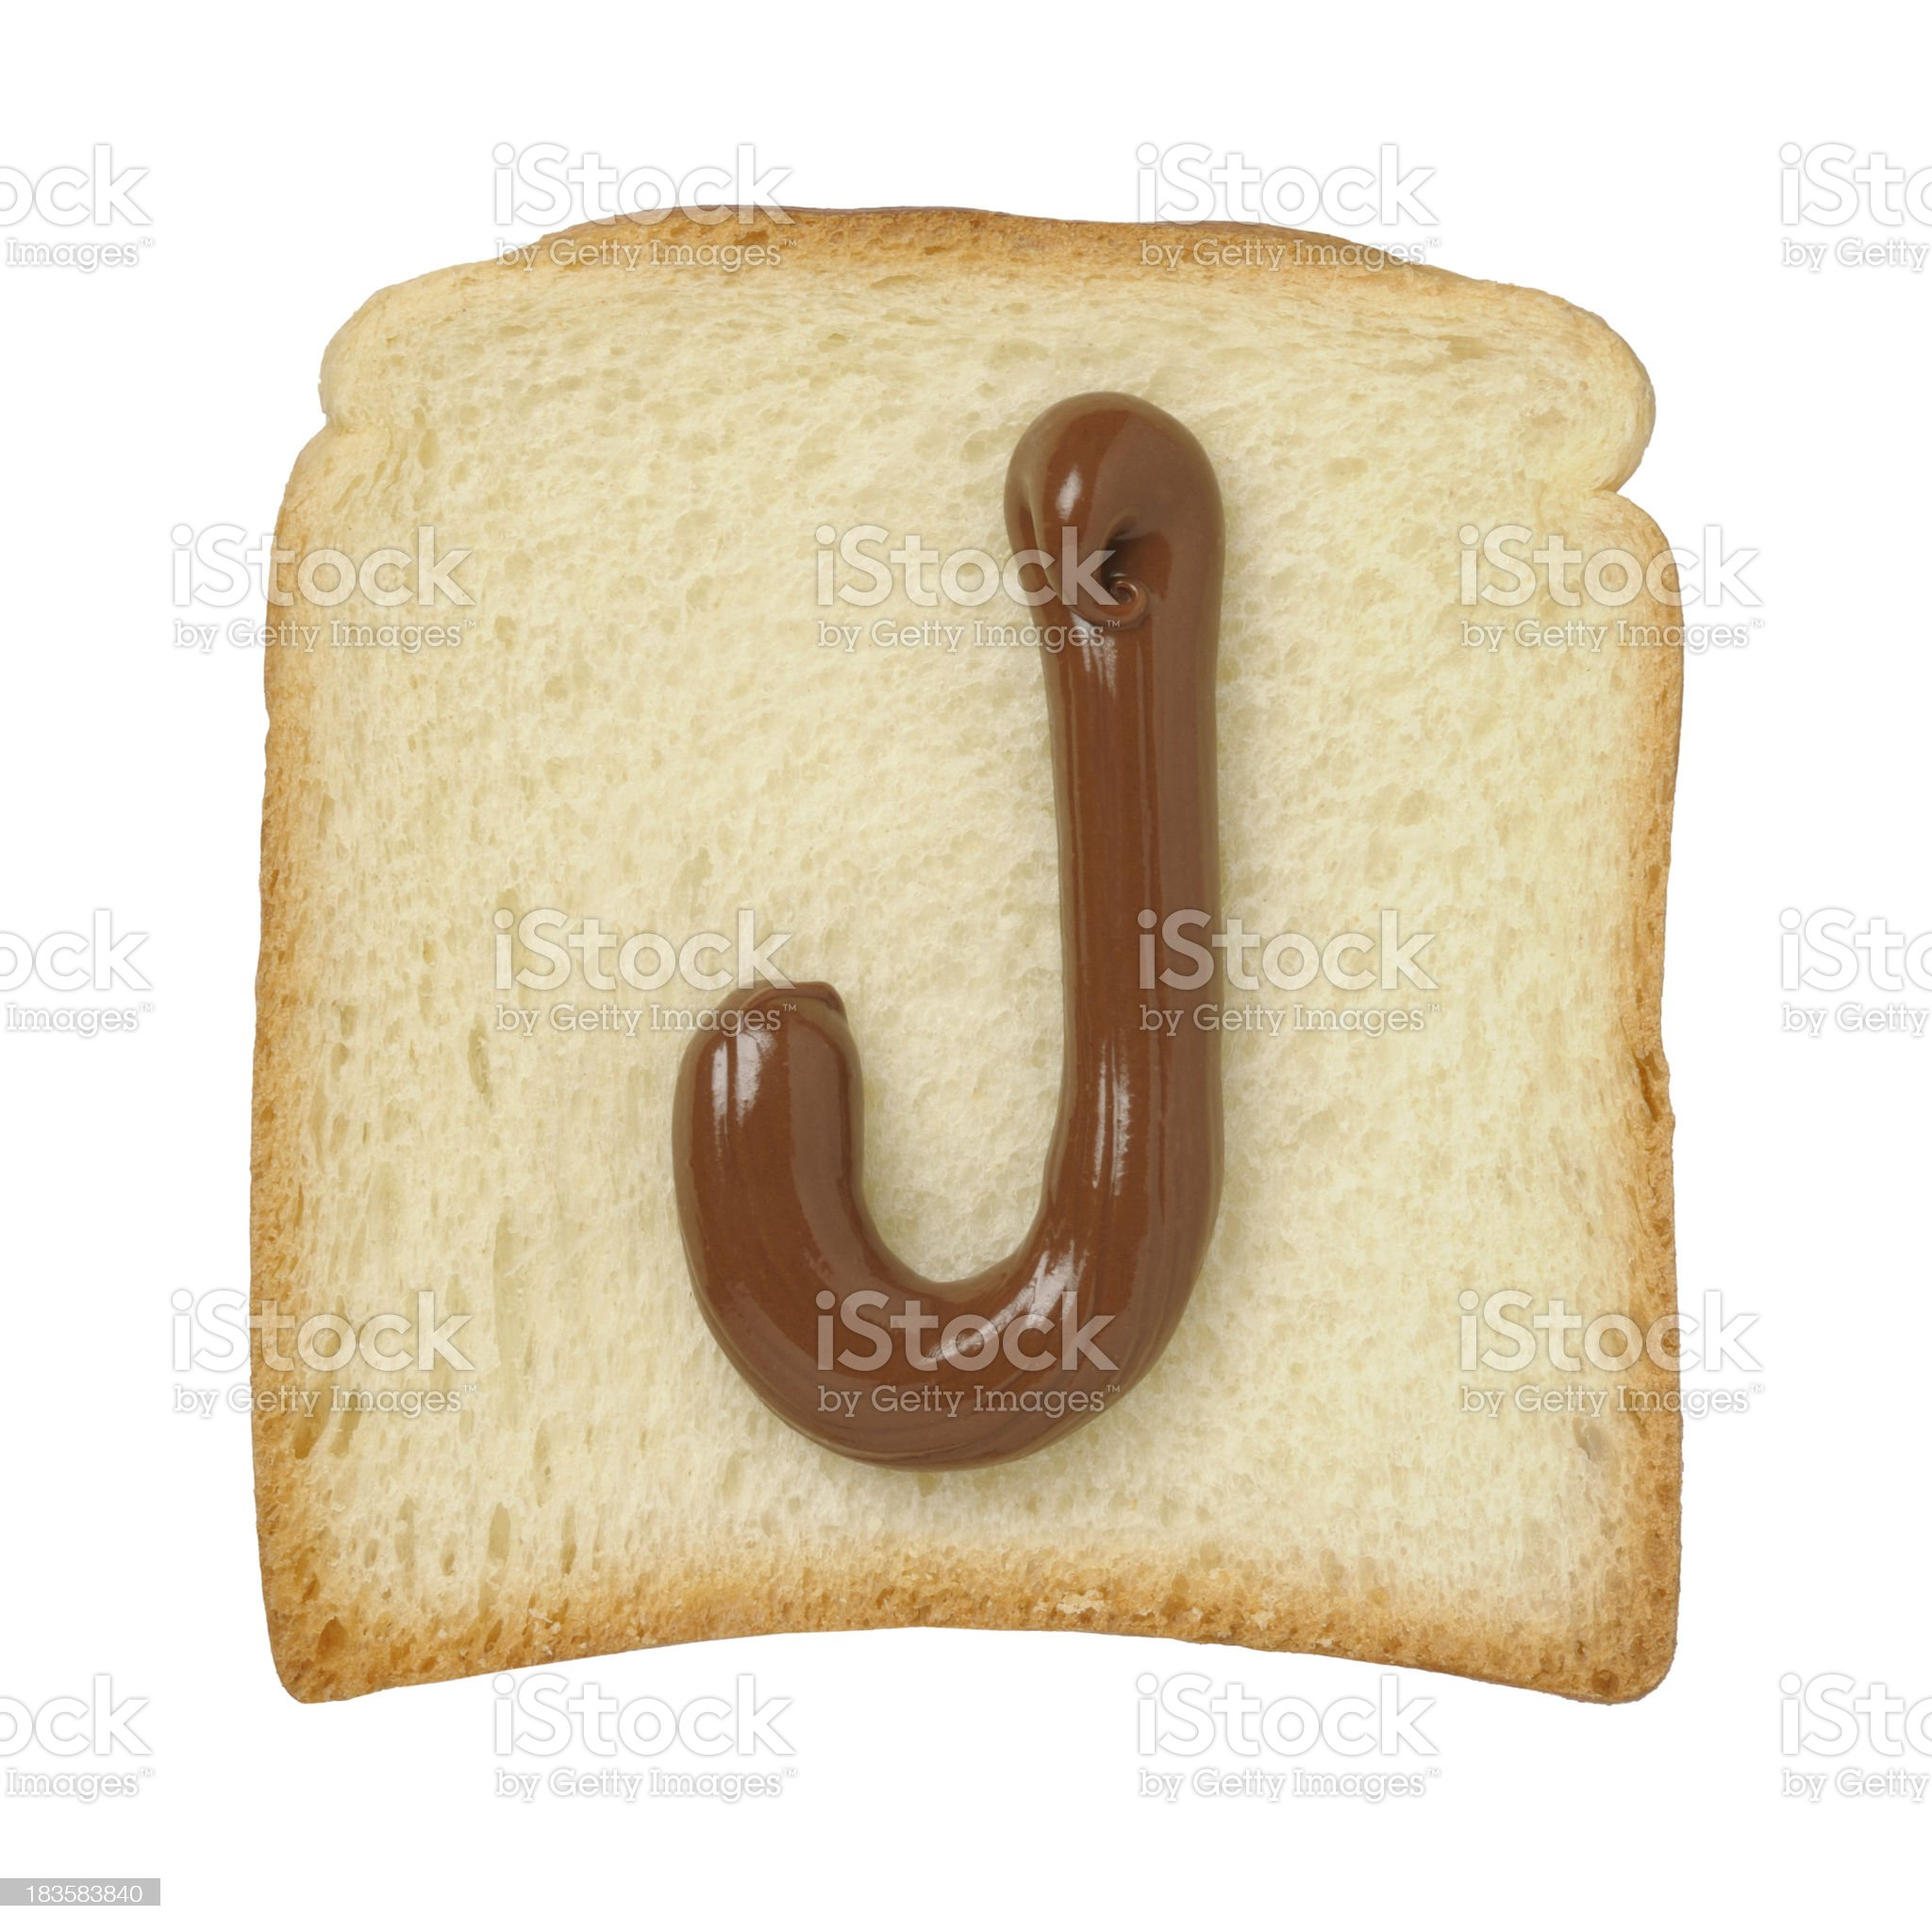 Chocolate letter J on a tinloaf slice, white background royalty-free stock photo